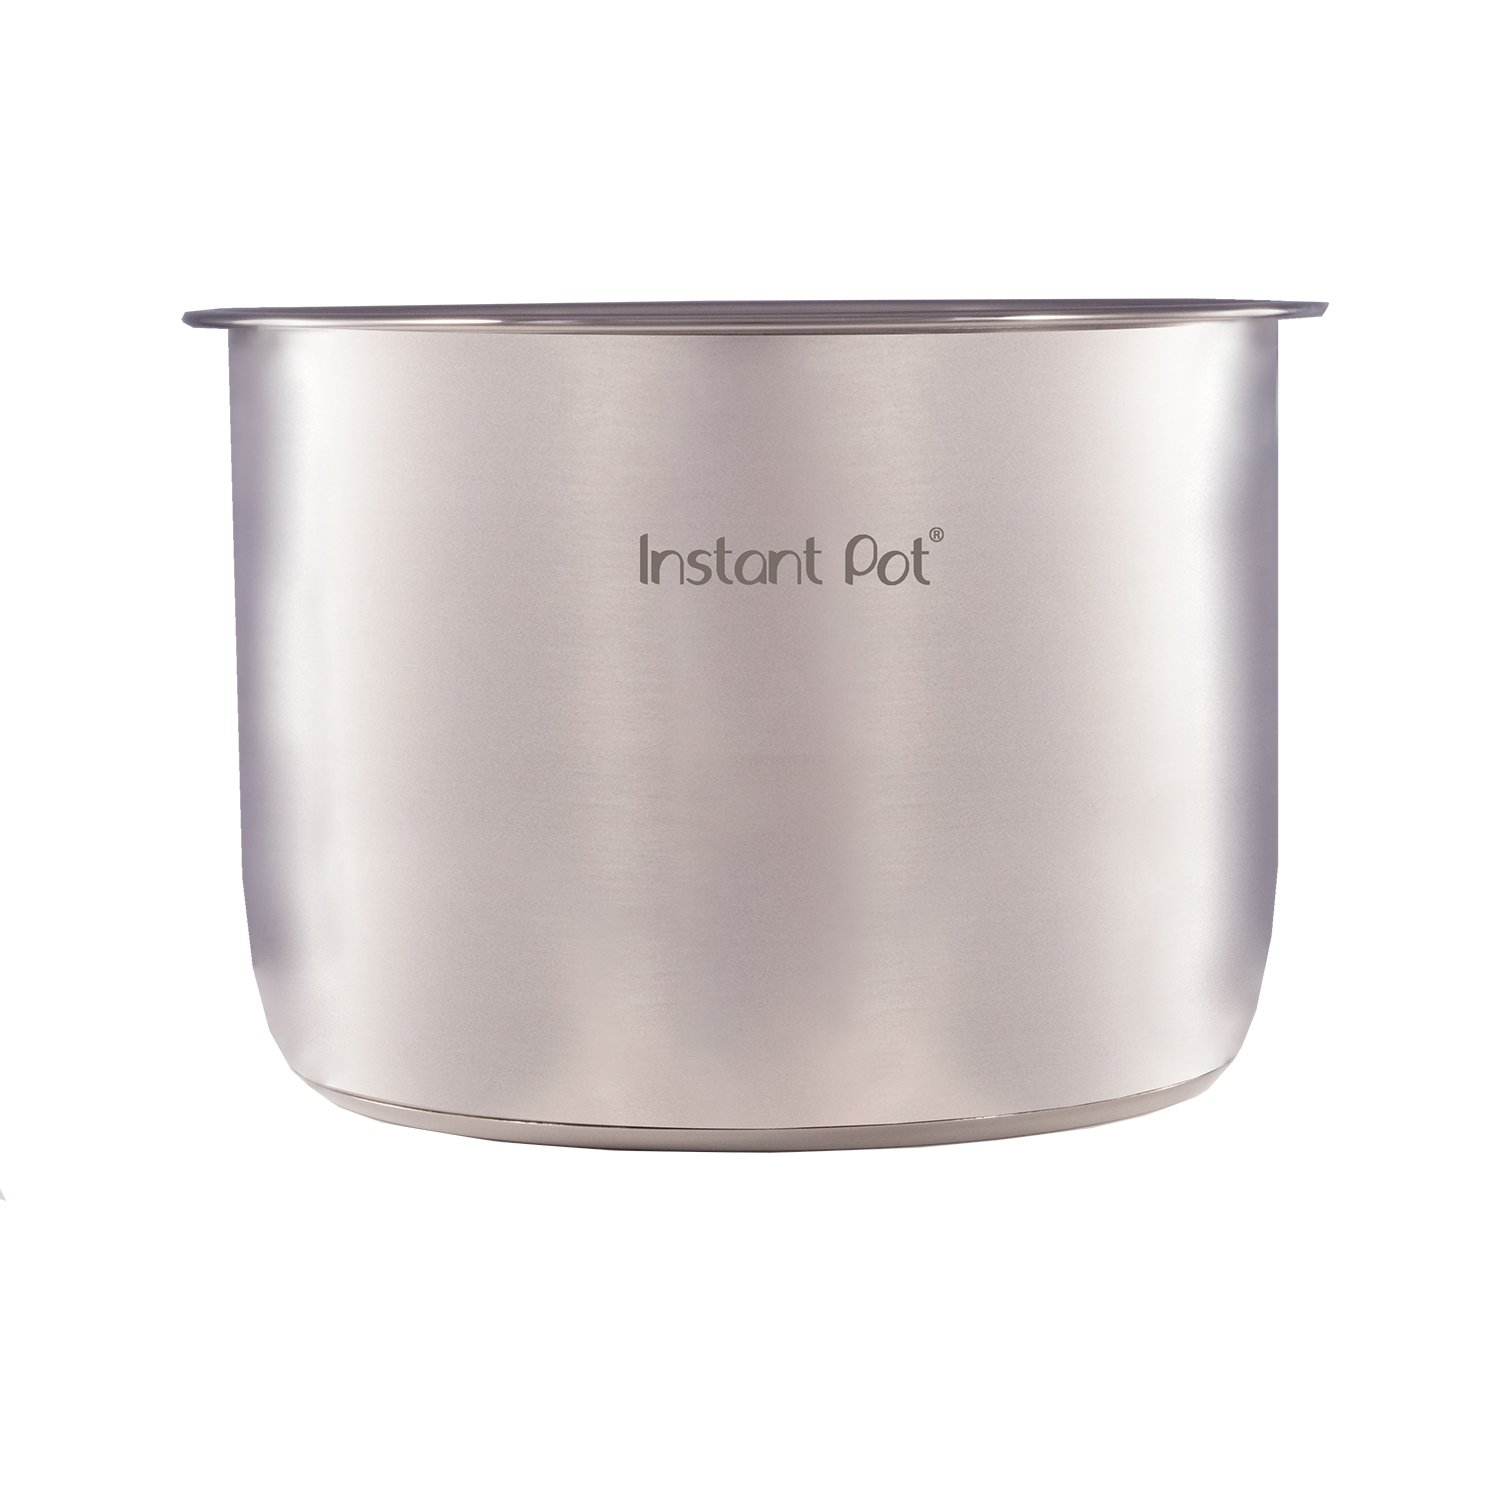 Genuine Instant Pot Stainless Steel Inner Cooking Pot - 8 Quart